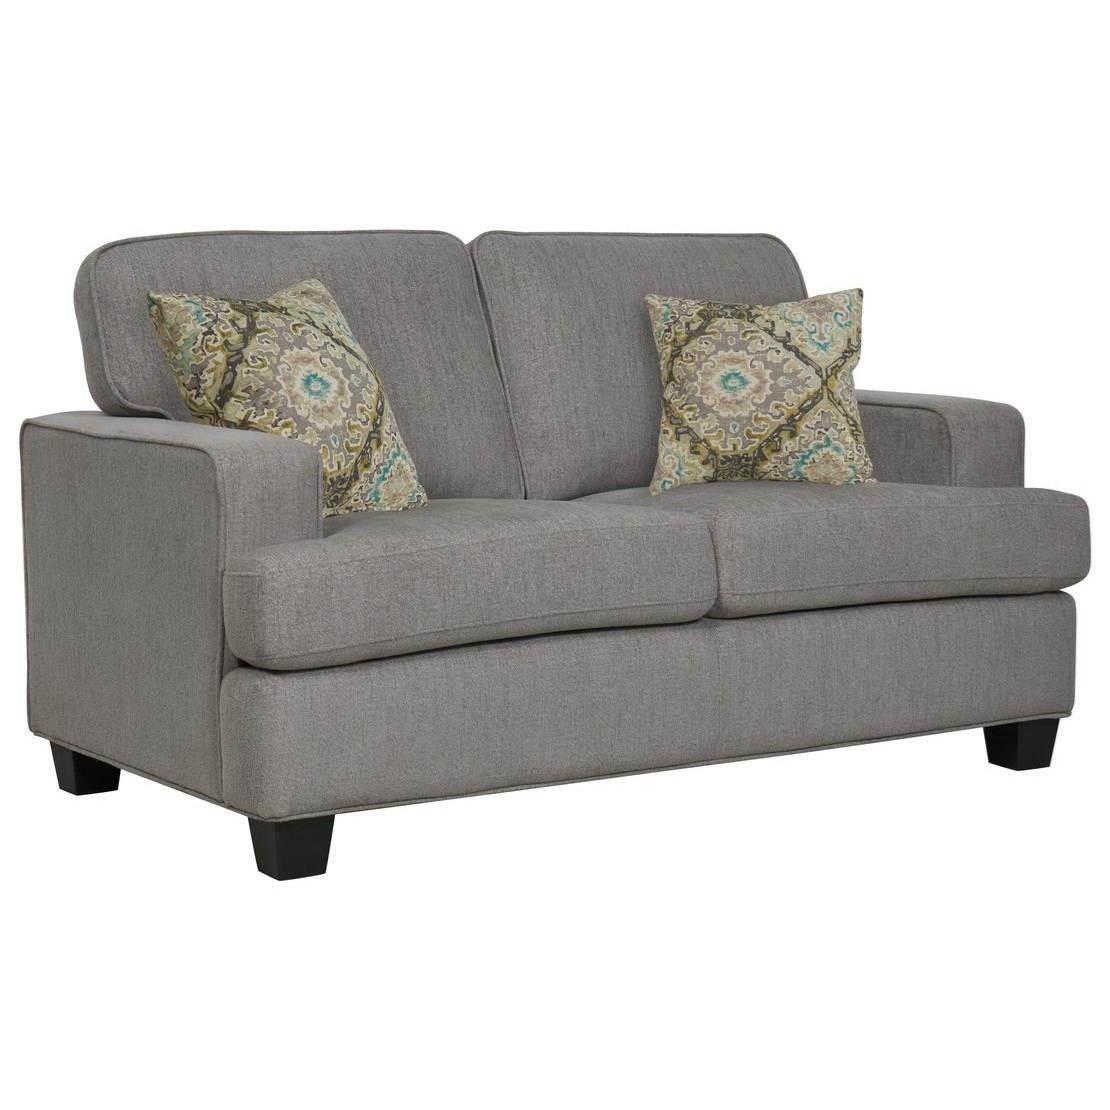 Carter Loveseat W/2 Accent Pillows by Emerald at Northeast Factory Direct